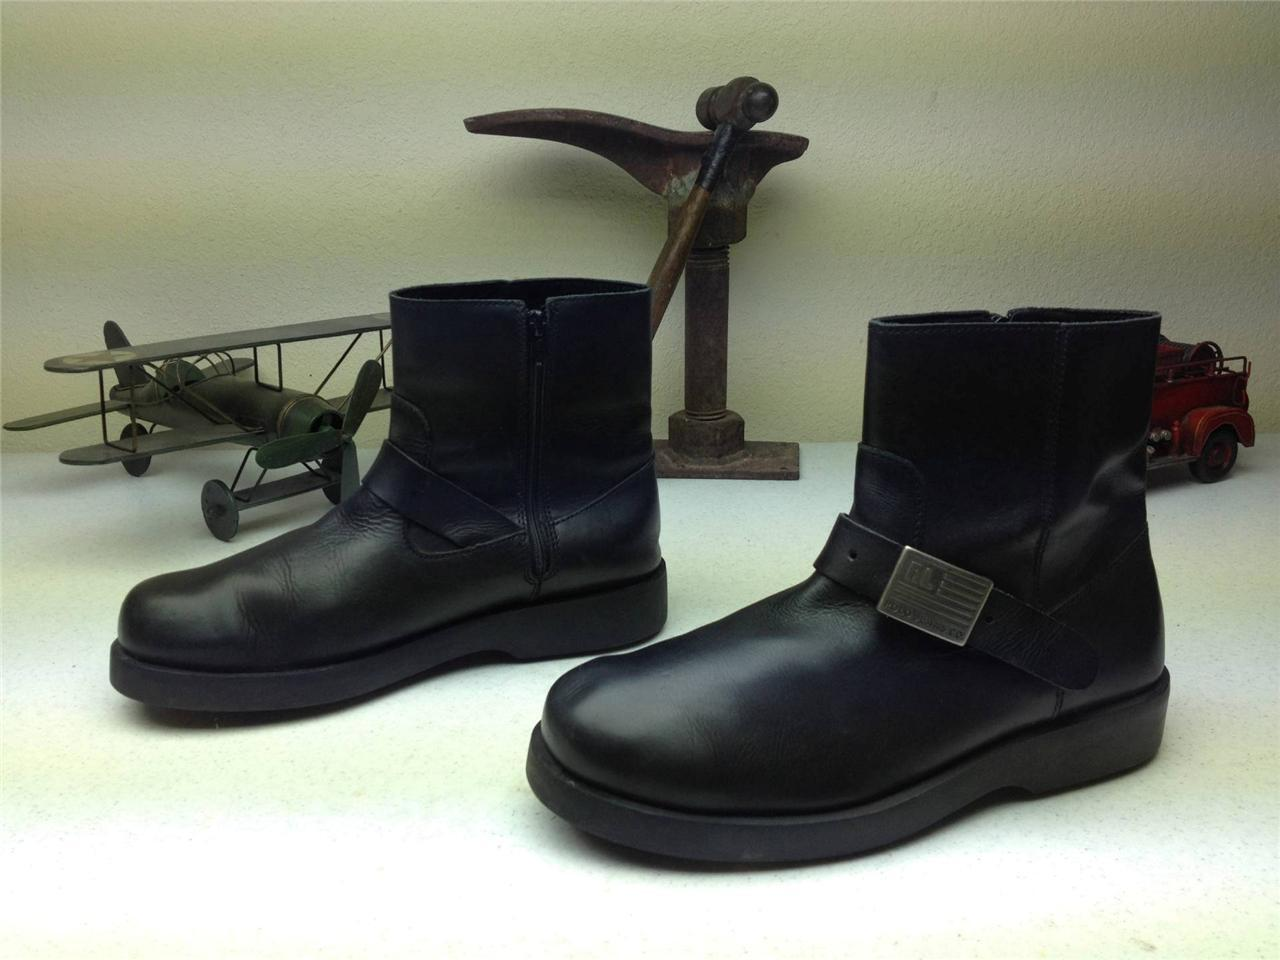 DISTRESSED POLO BLACK LEATHER ZIP UP BUCKLE BOOTS SIZE 9.5 D